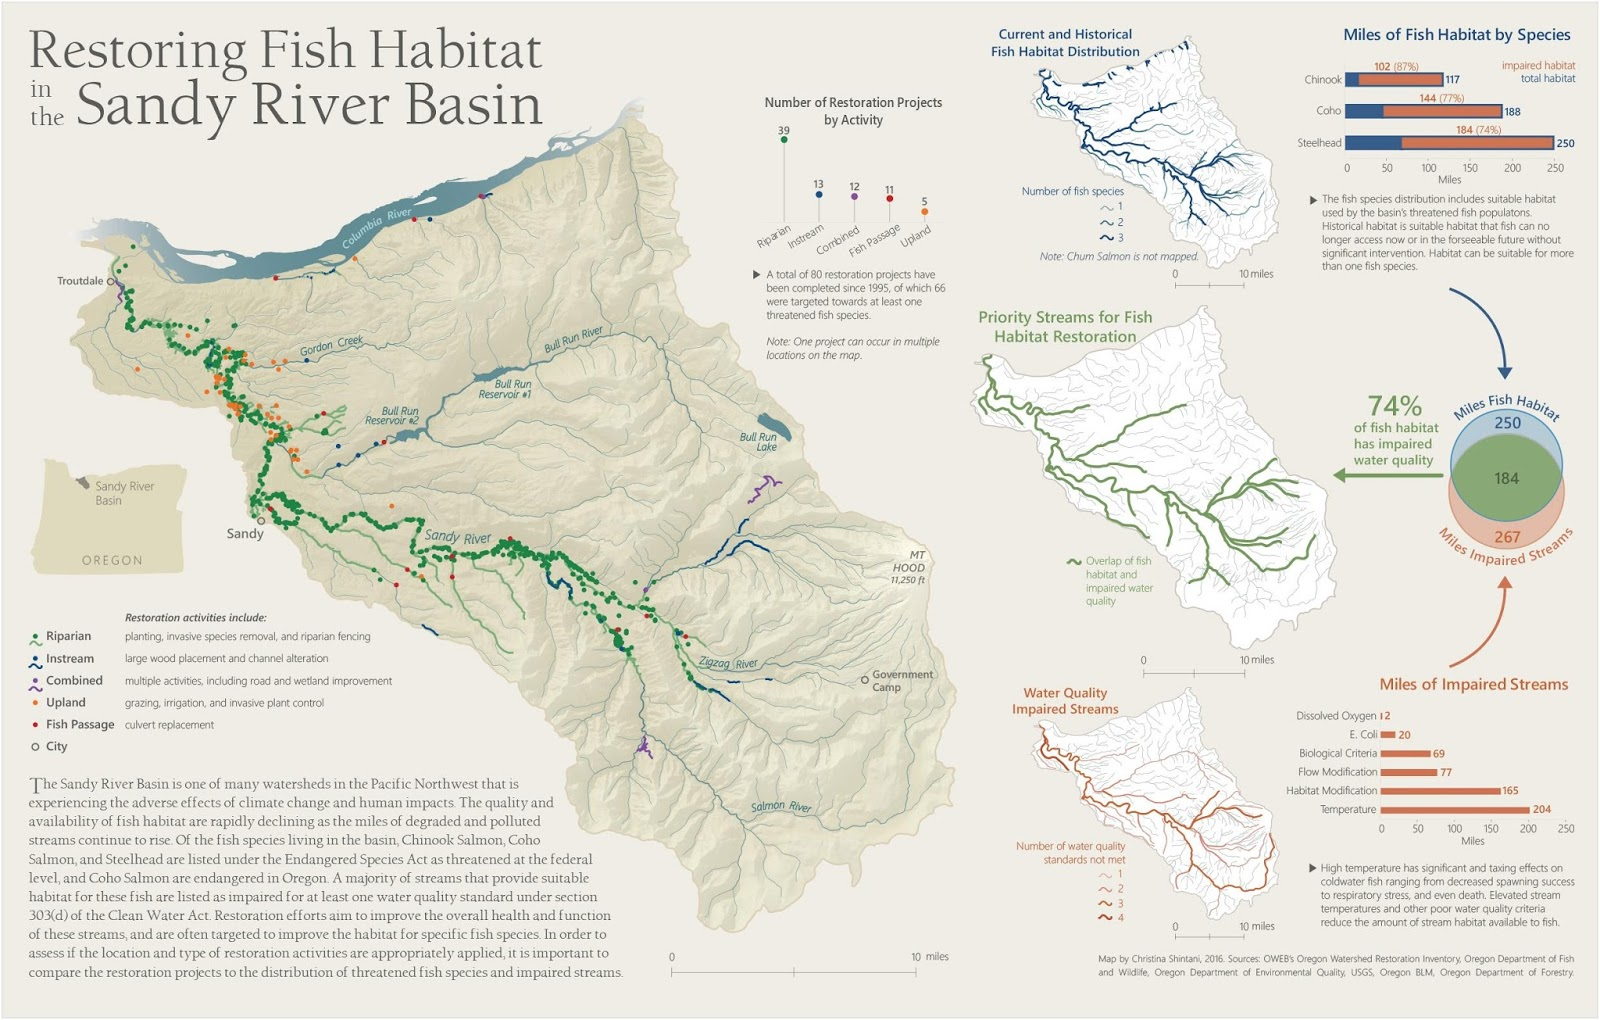 Restoring fish habitat in the Sandy River Basin